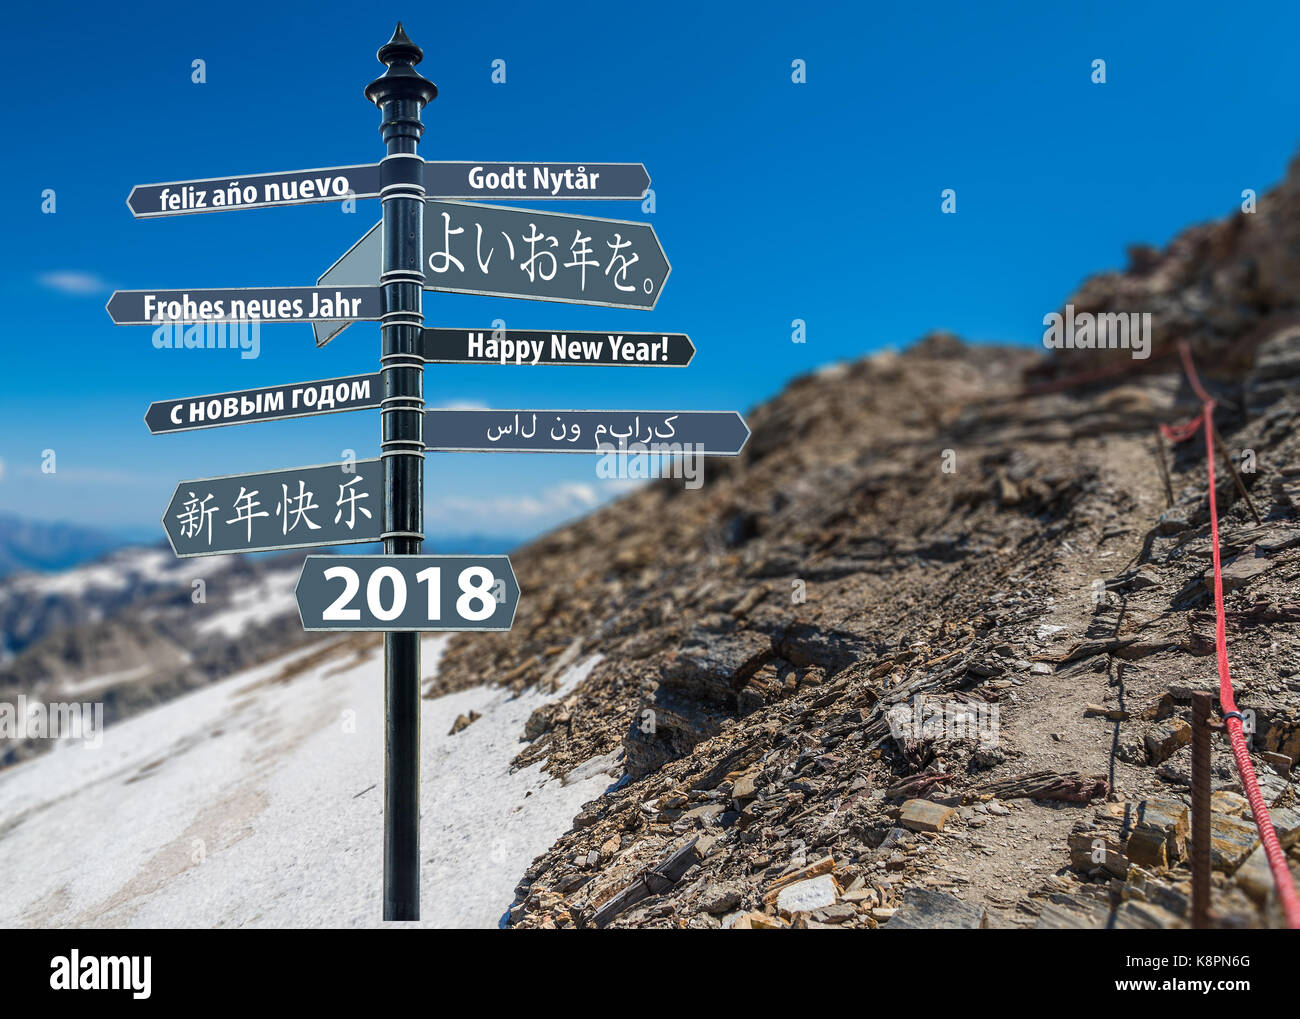 Signpost whit Happy New Year in many languages, mountain in background - Stock Image